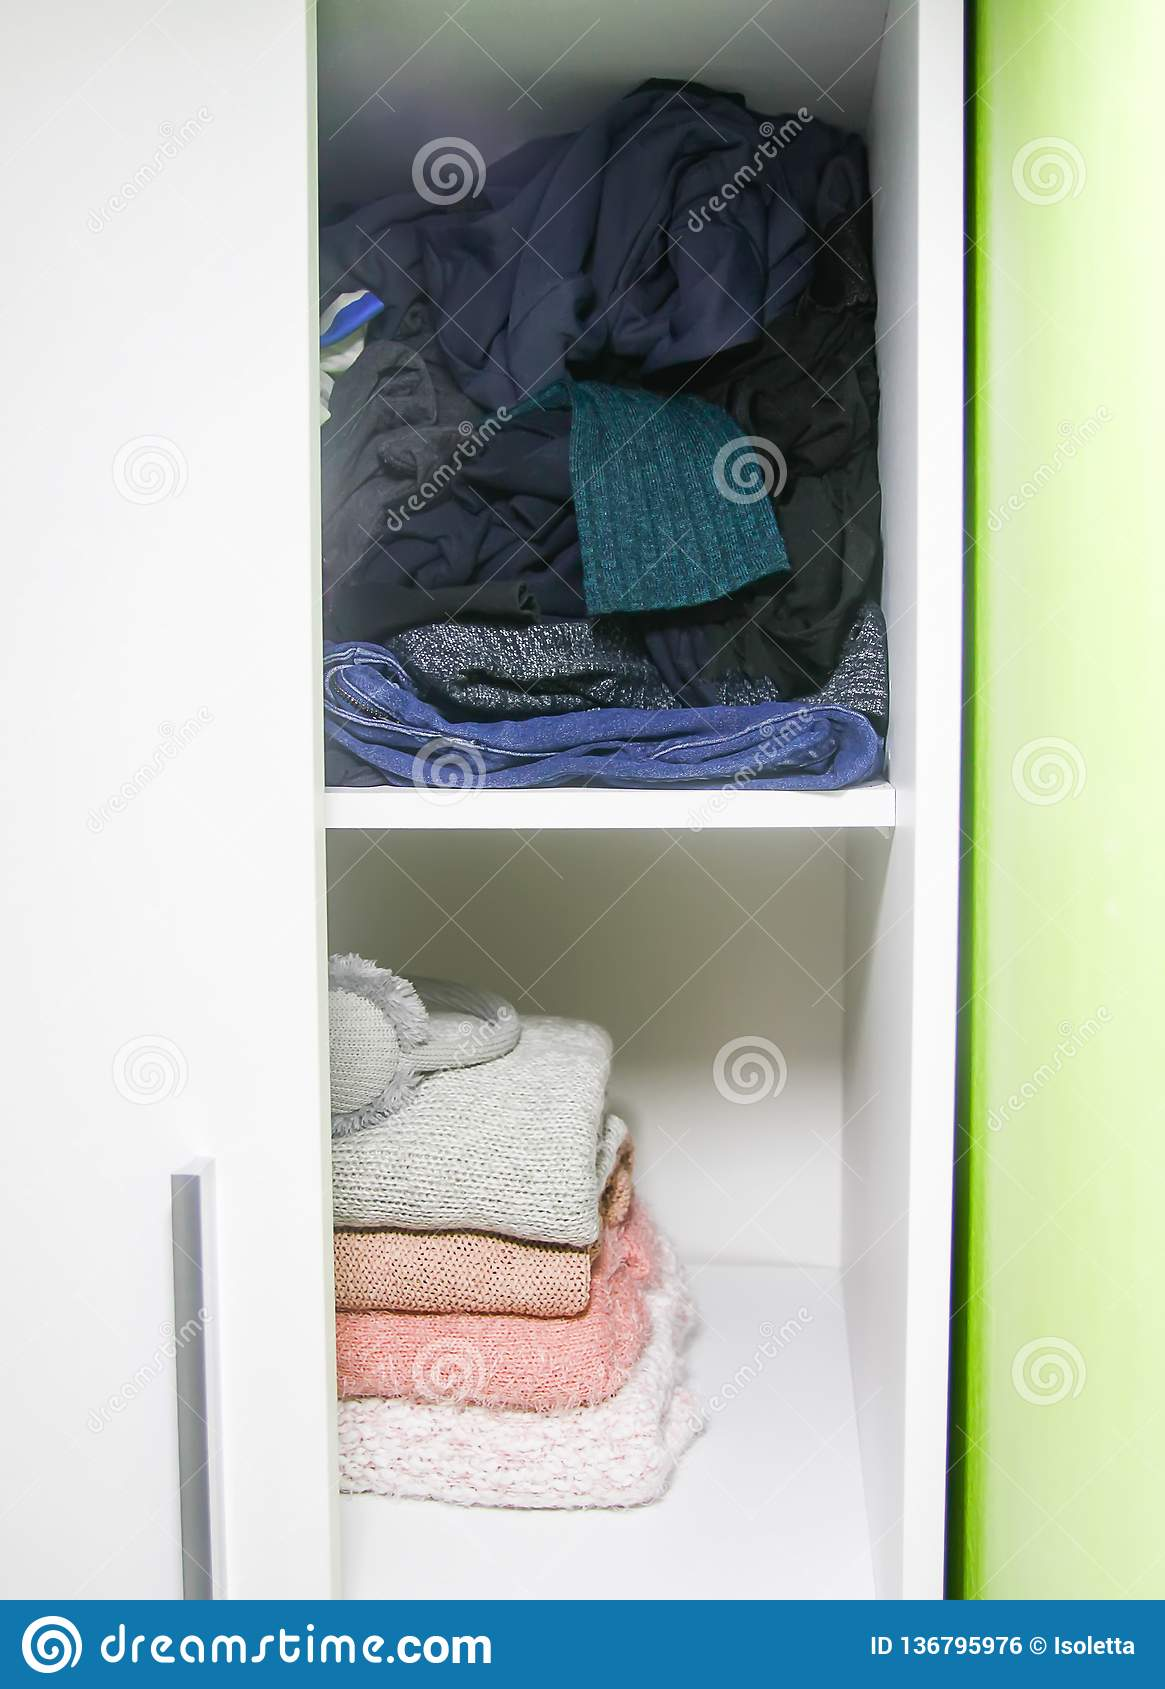 Home wardrobe with clothes. Small space organization. The contrast of order and disorder